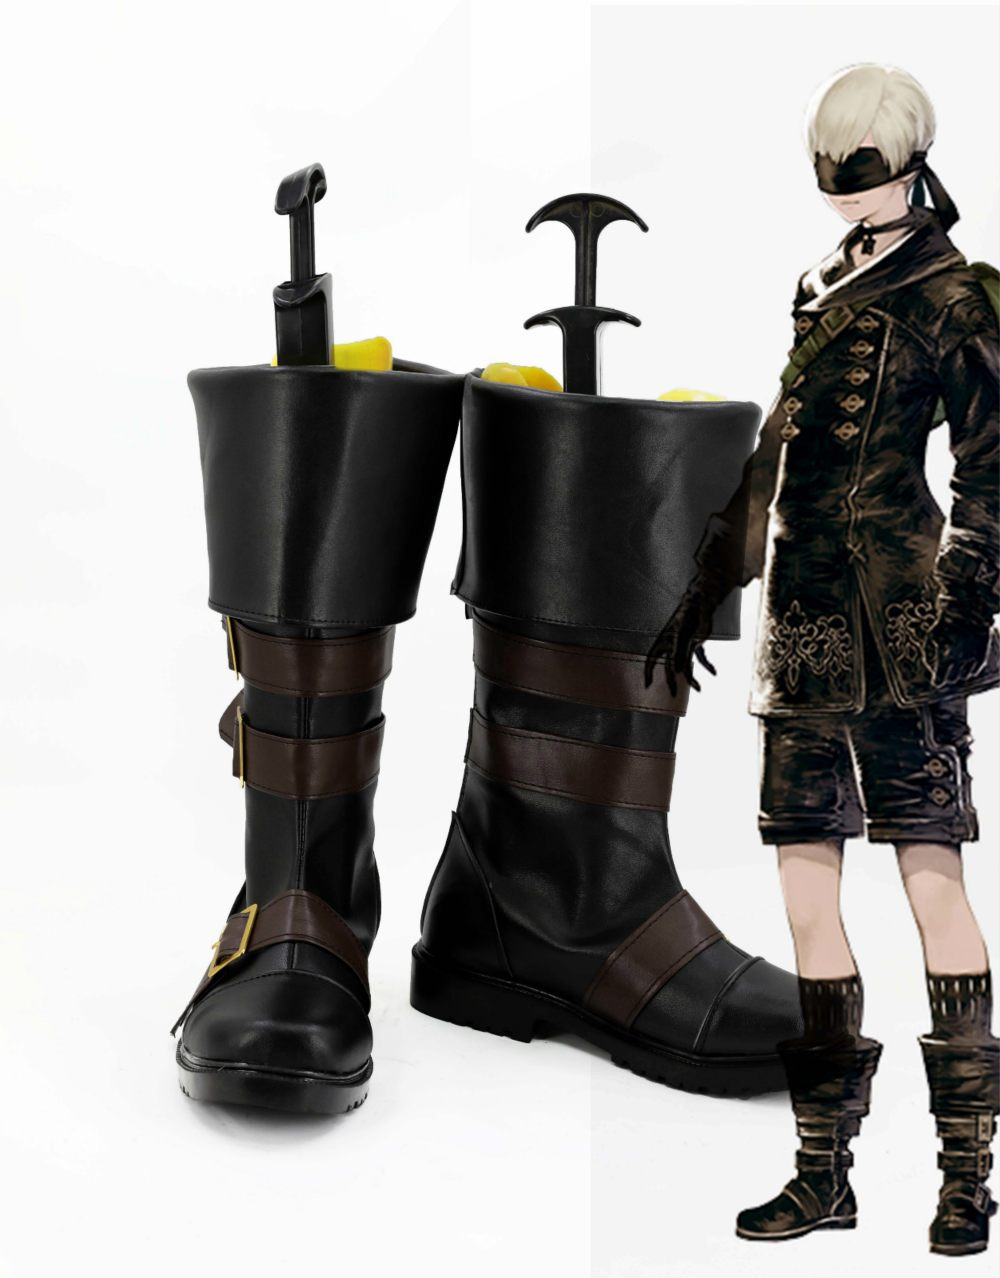 NieR/ Nier: Automata 9S Boots Cosplay Shoes